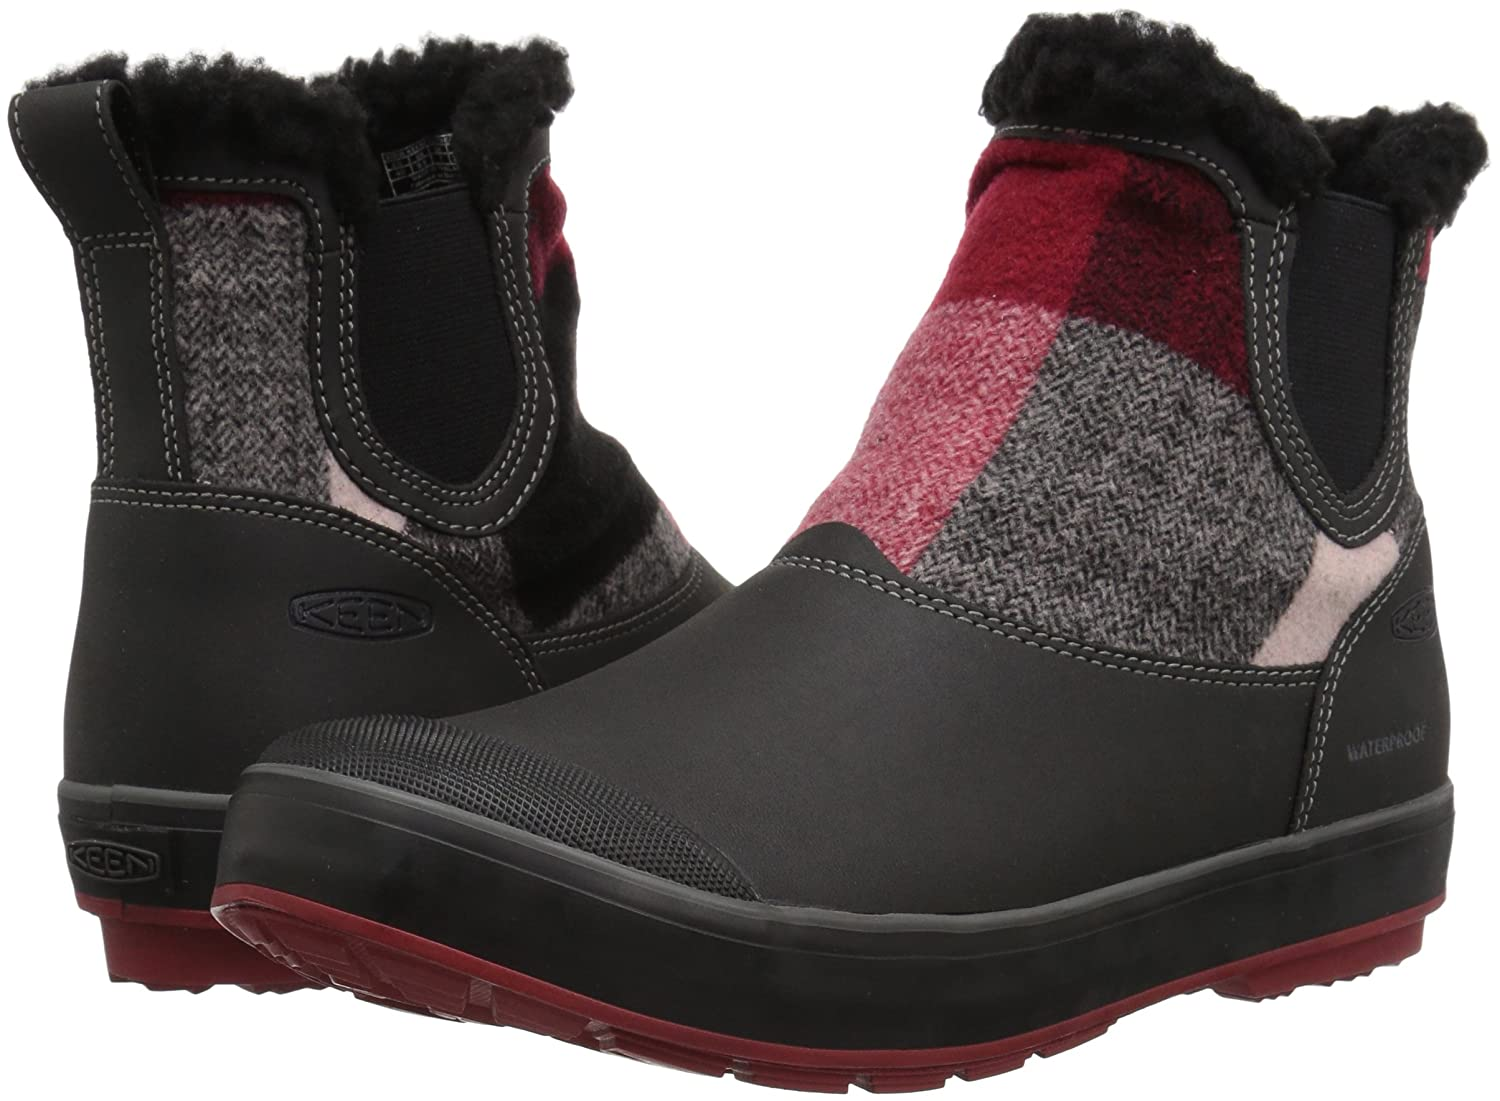 KEEN Women's Elsa Chelsea Waterproof Boot B01N76HSJV 7 B(M) US|Red Dahlia Wool